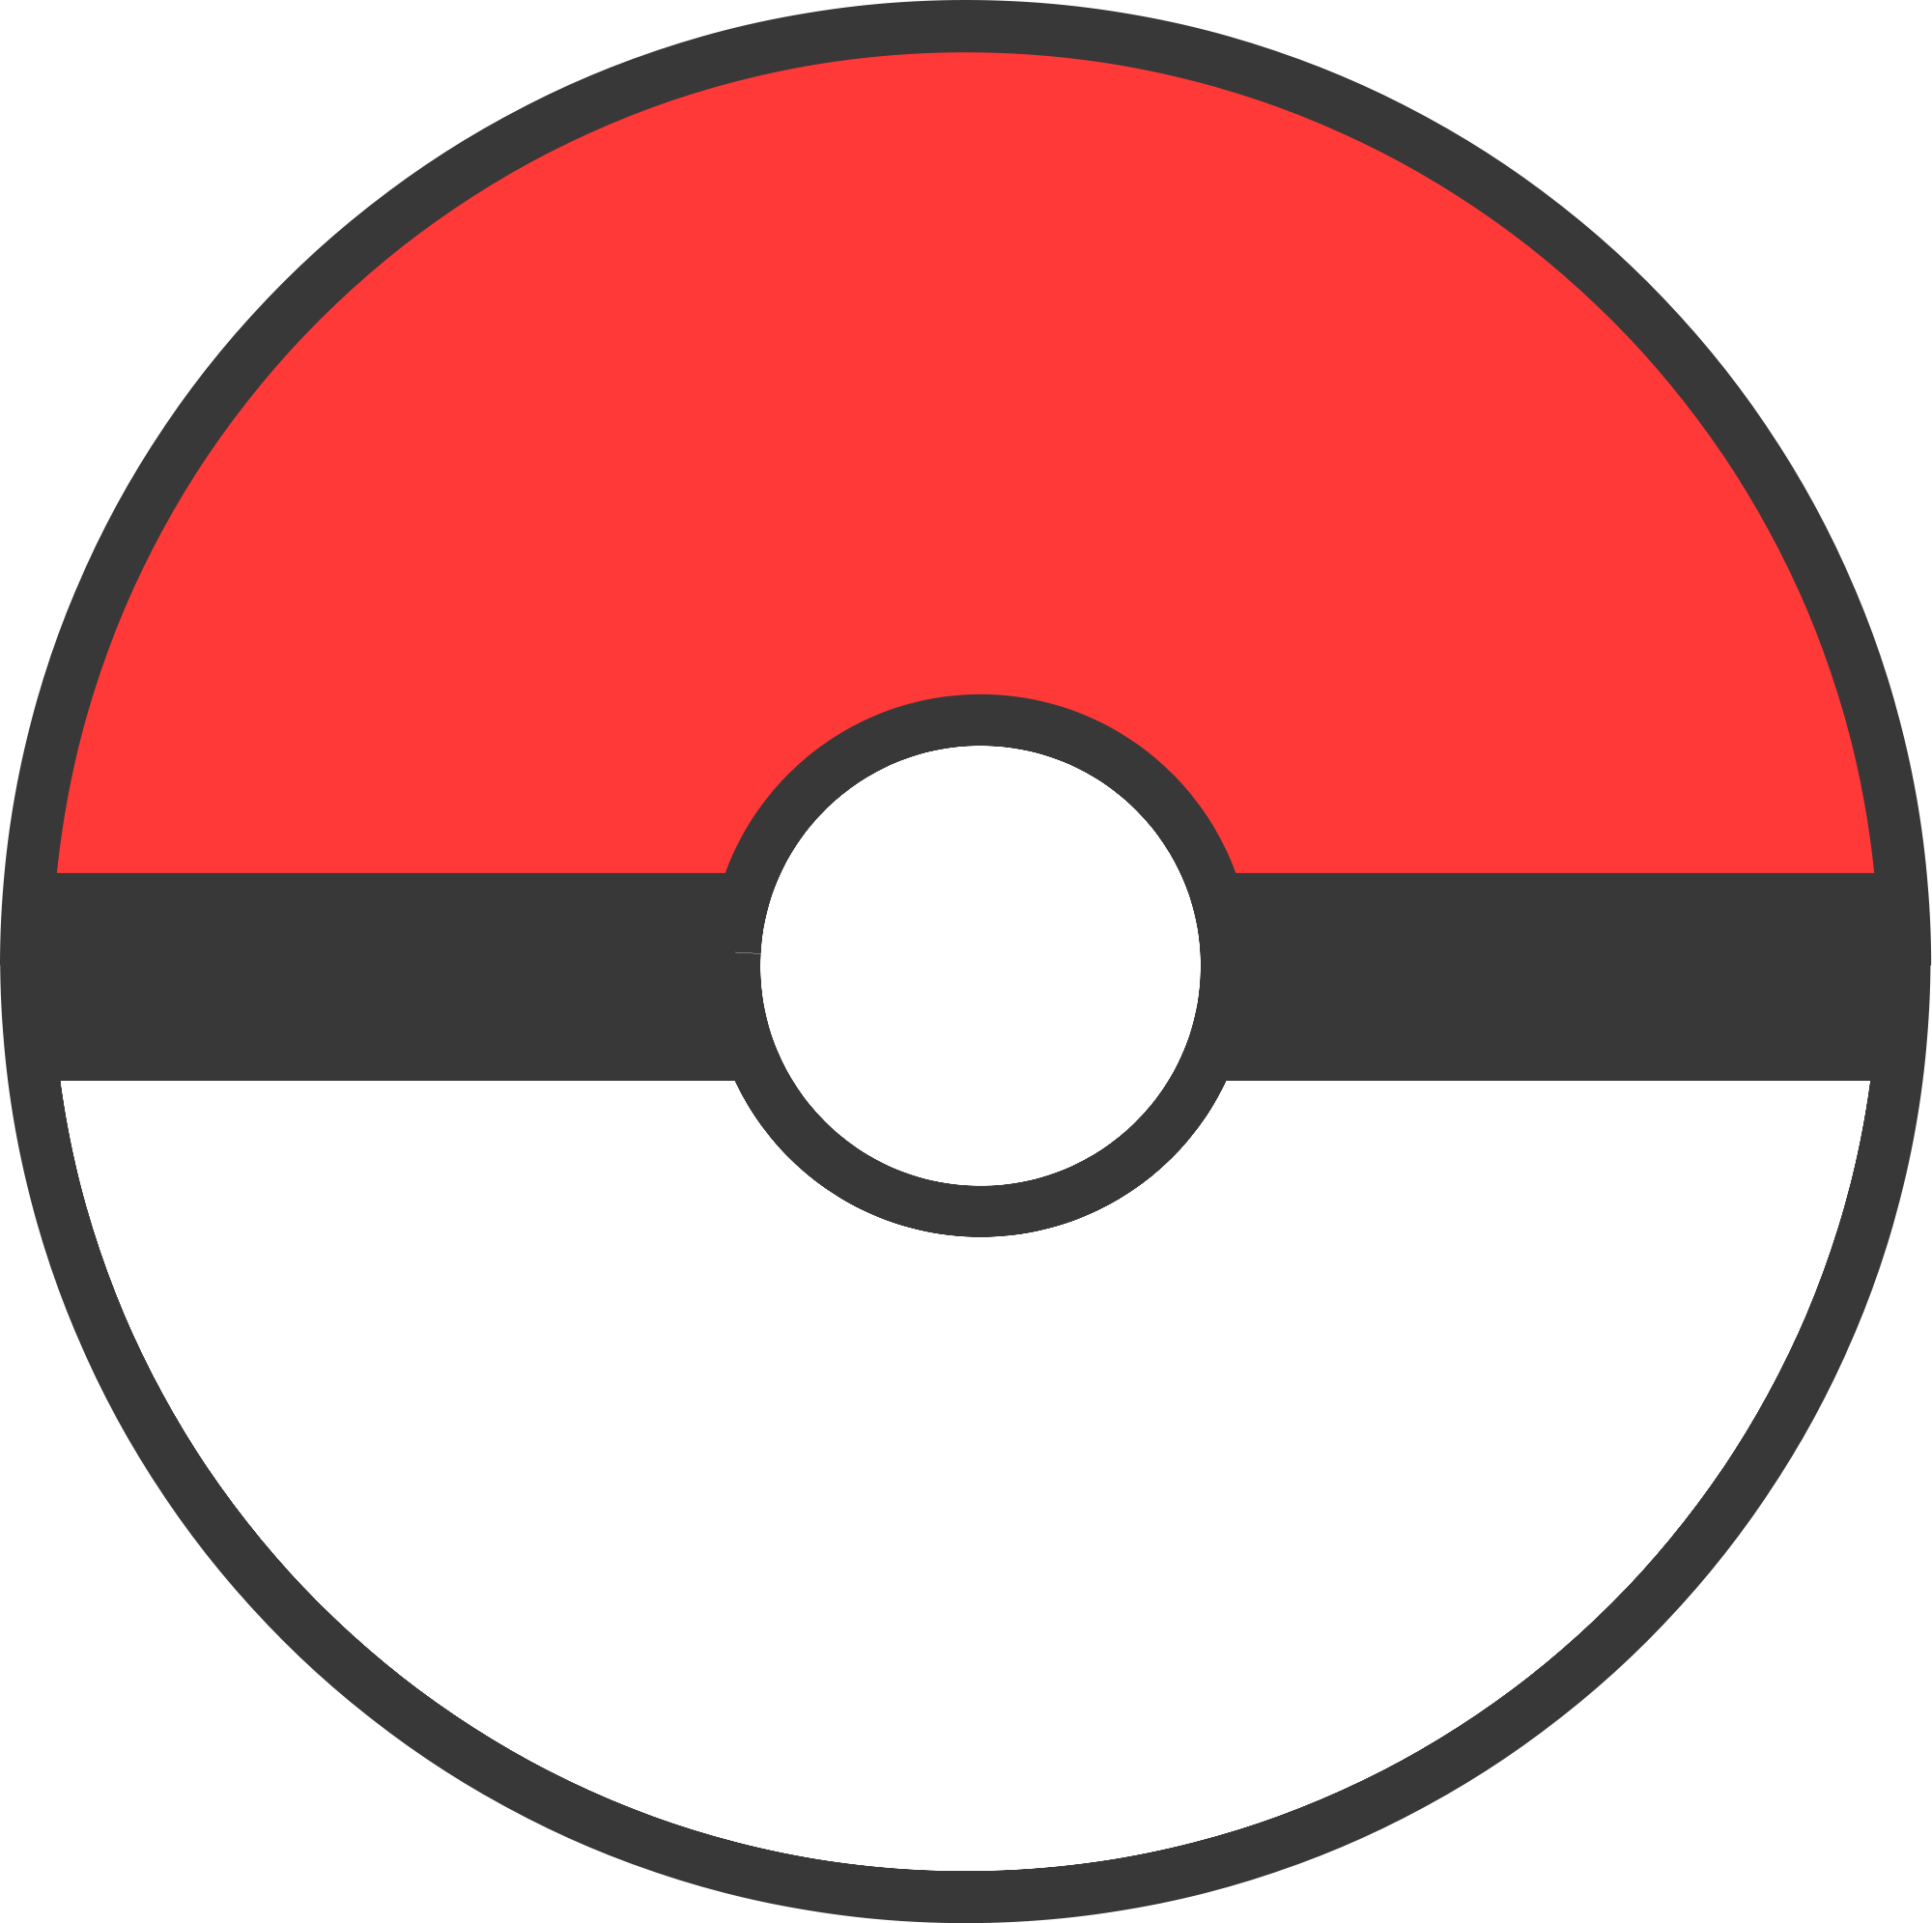 Png . Pokeball clipart transparent background